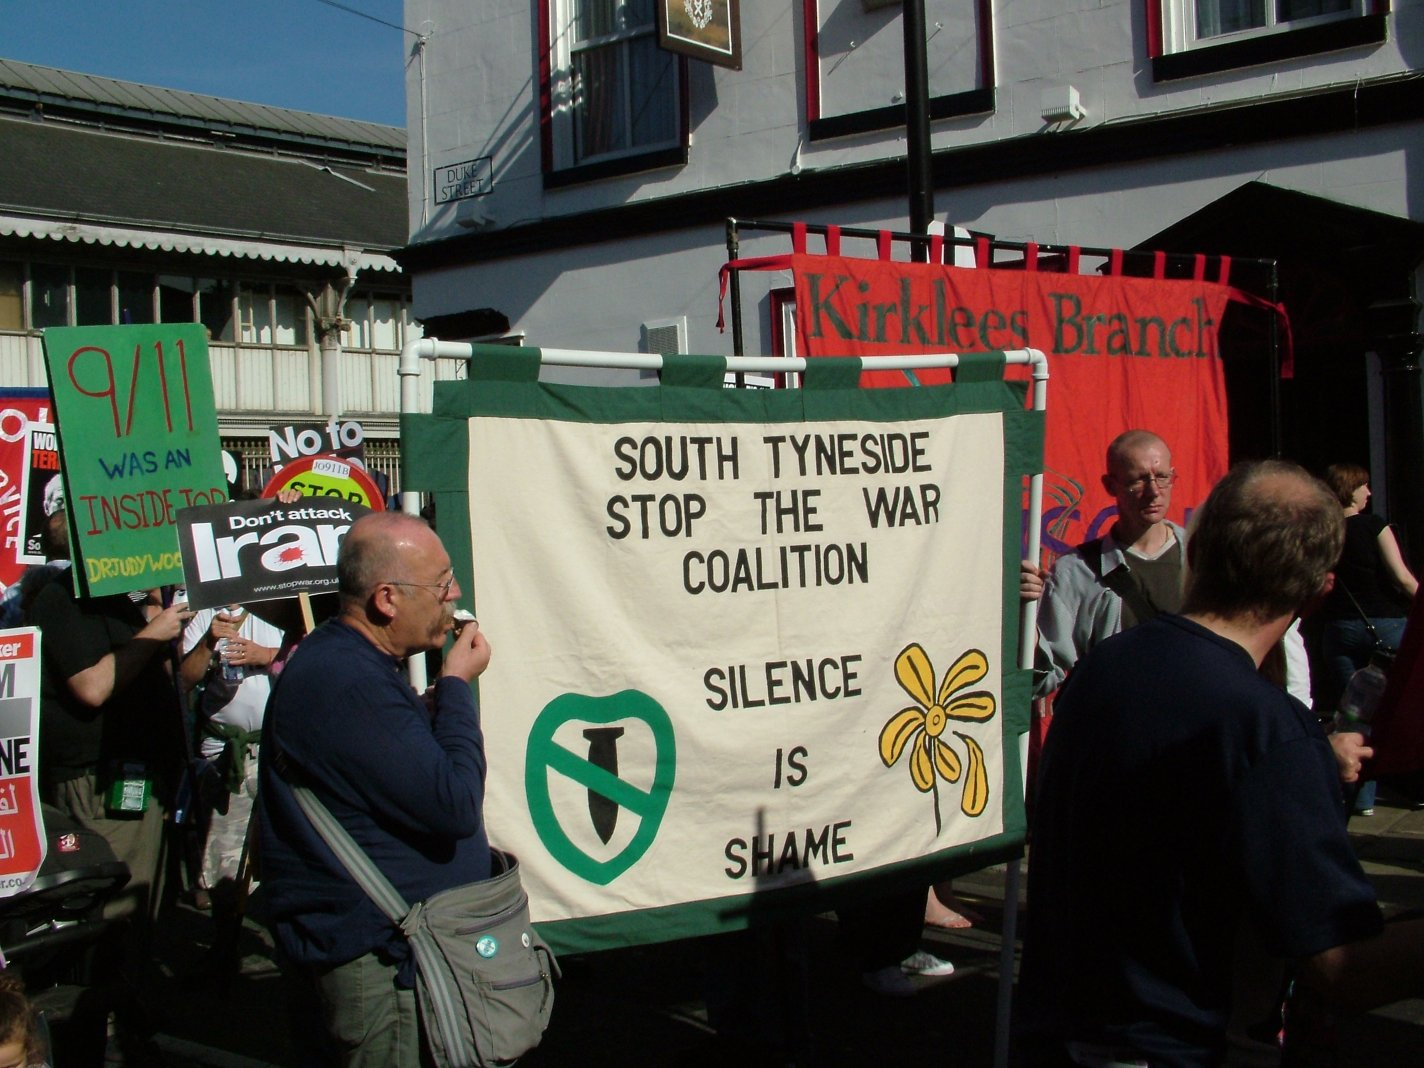 South Tyneside Stop the War